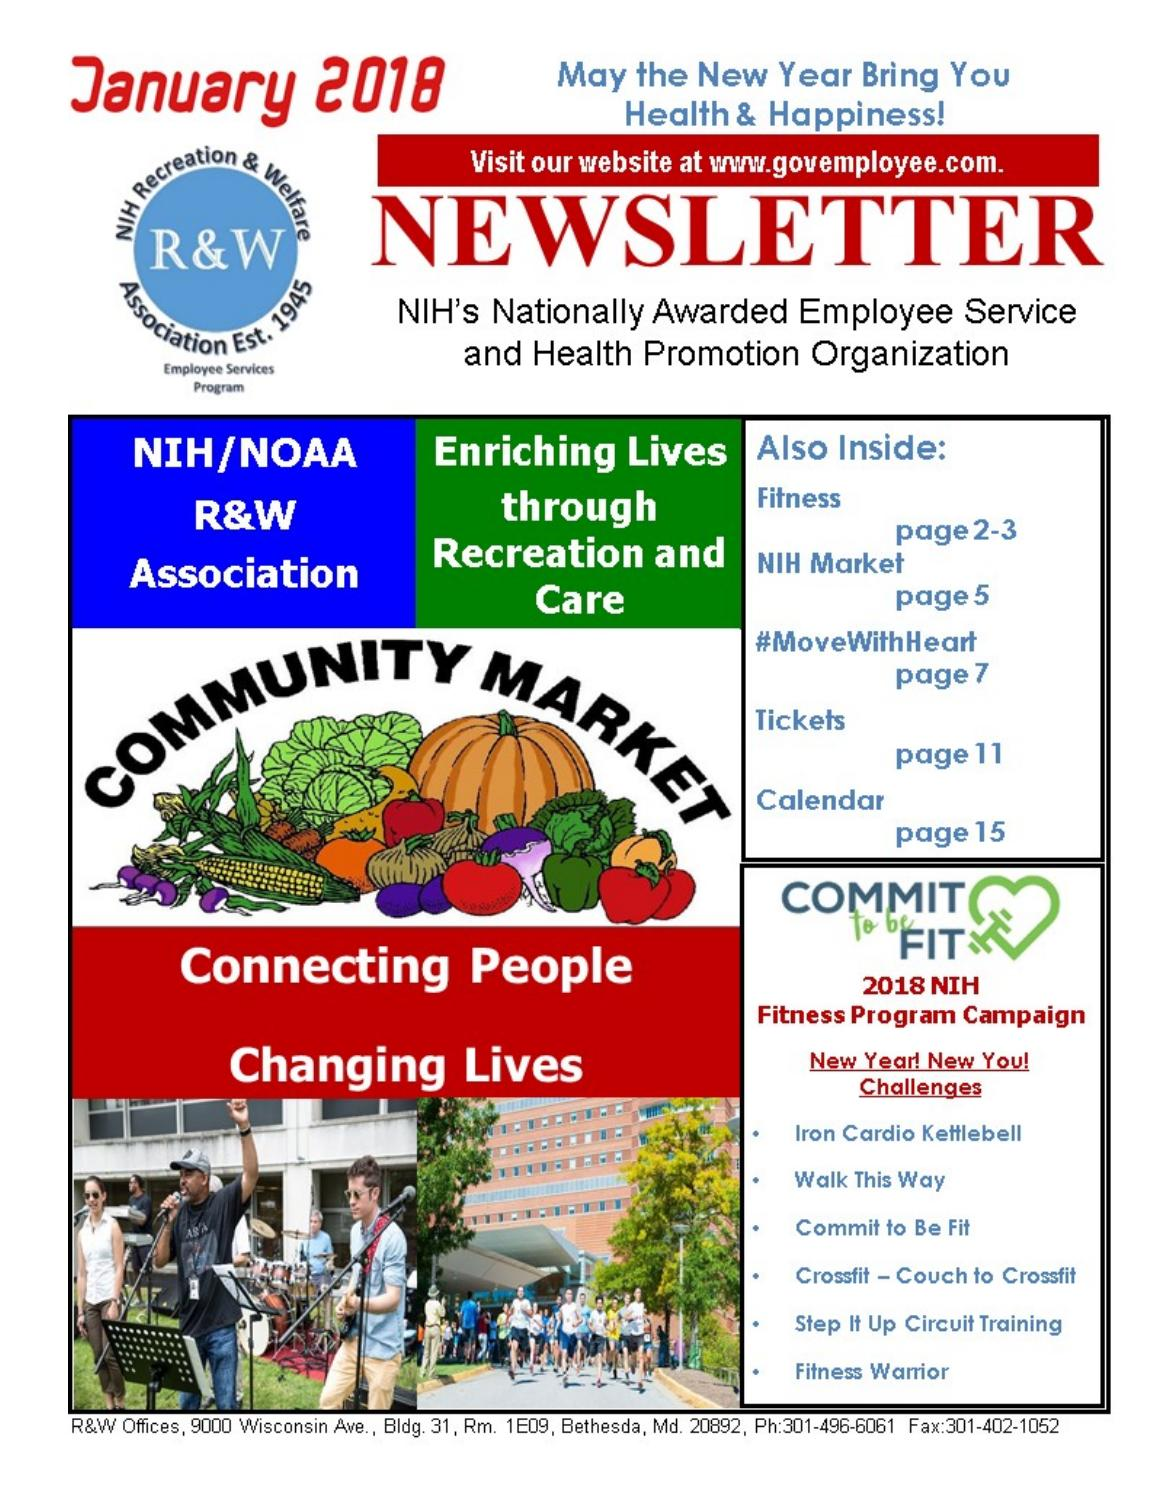 January 2018 R&W E-Newsletter by NIH R&W - issuu